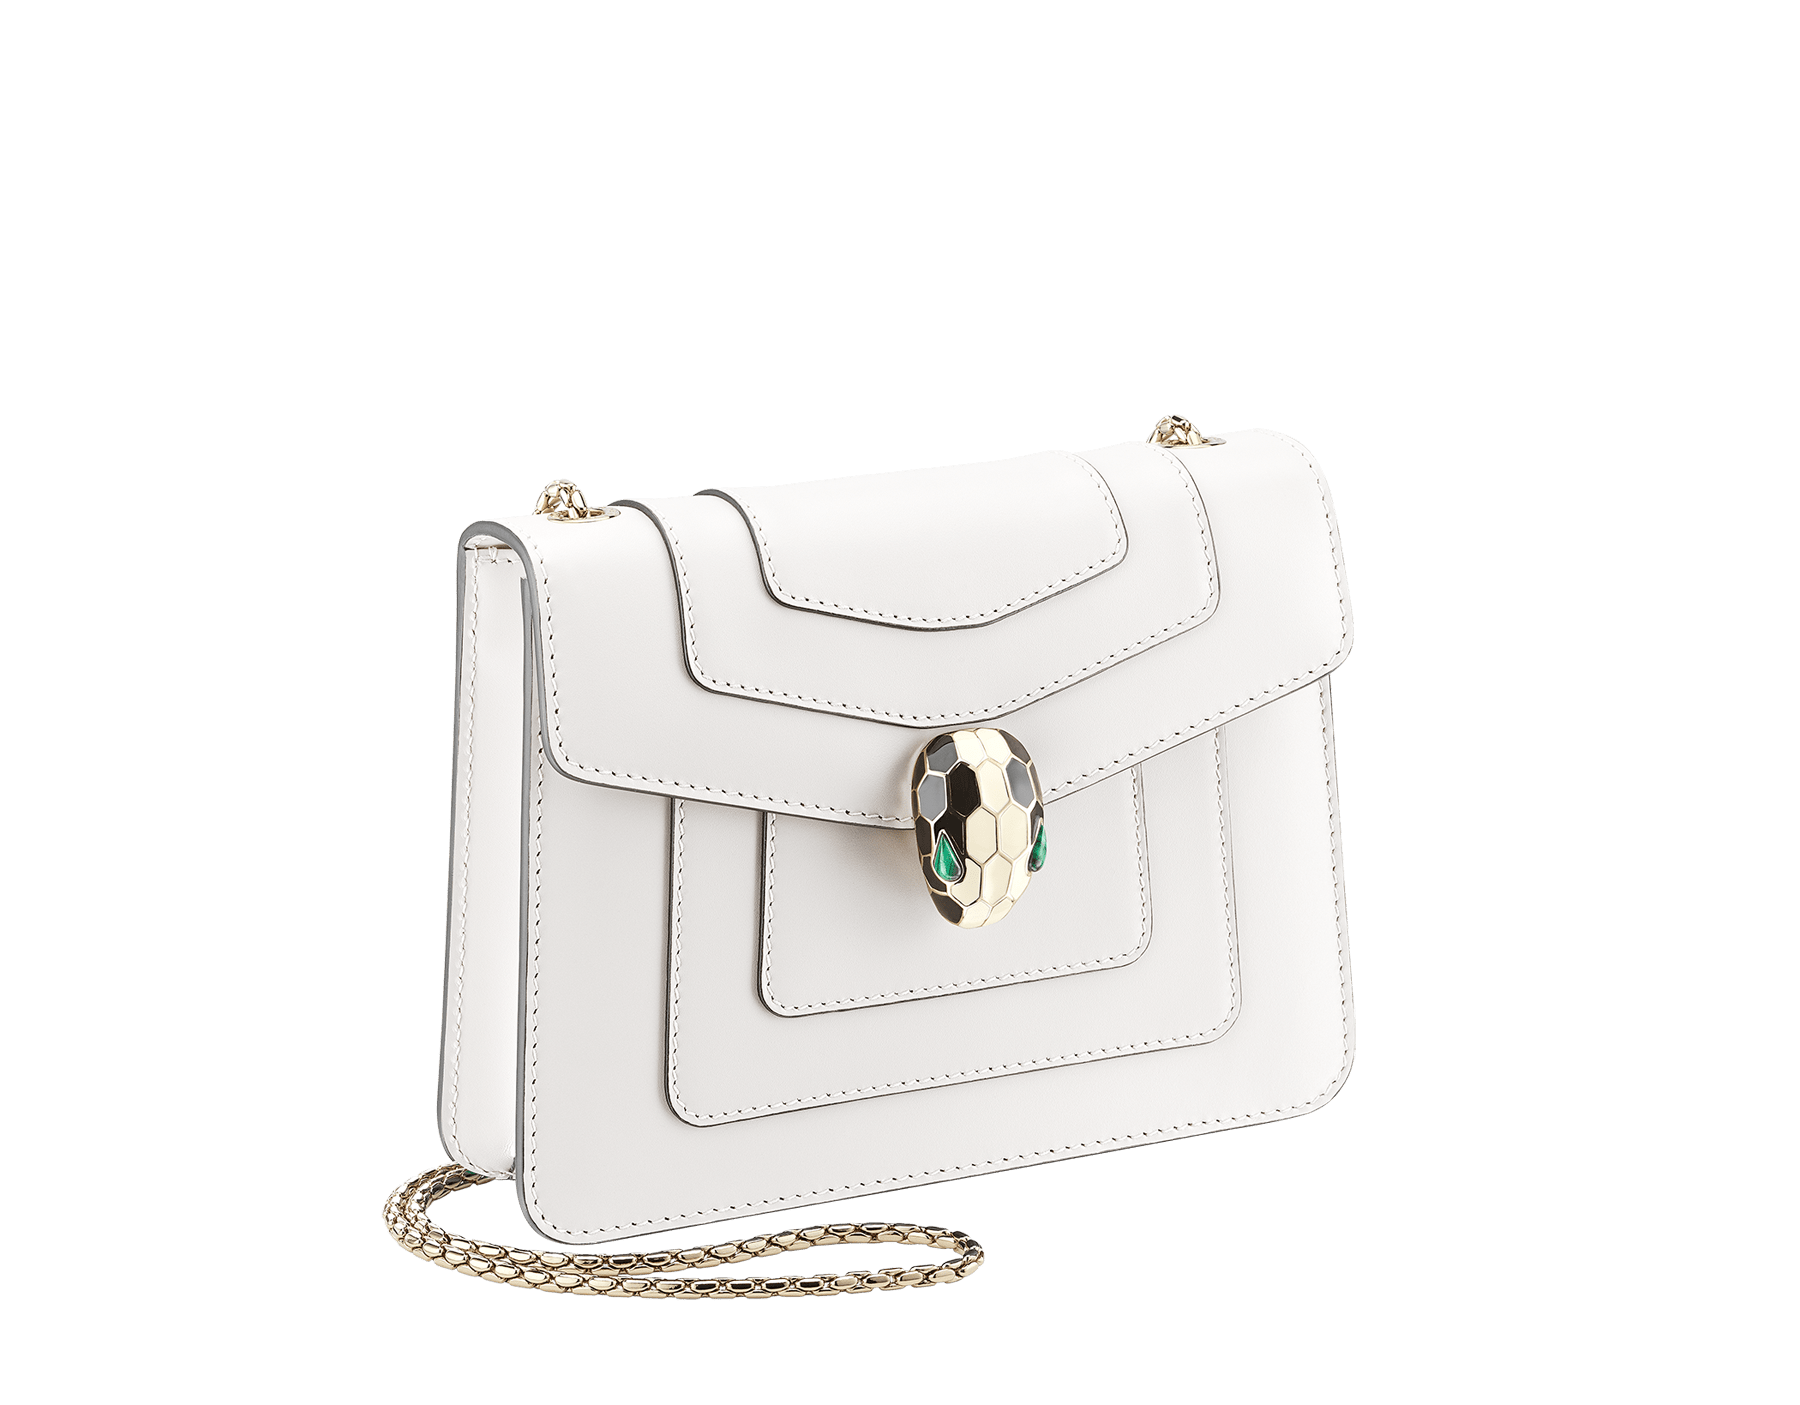 Flap cover bag Serpenti Forever in white agate calf leather. Brass light gold plated snake head closure in black and white enamel with eyes in green malachite. 283167 image 2